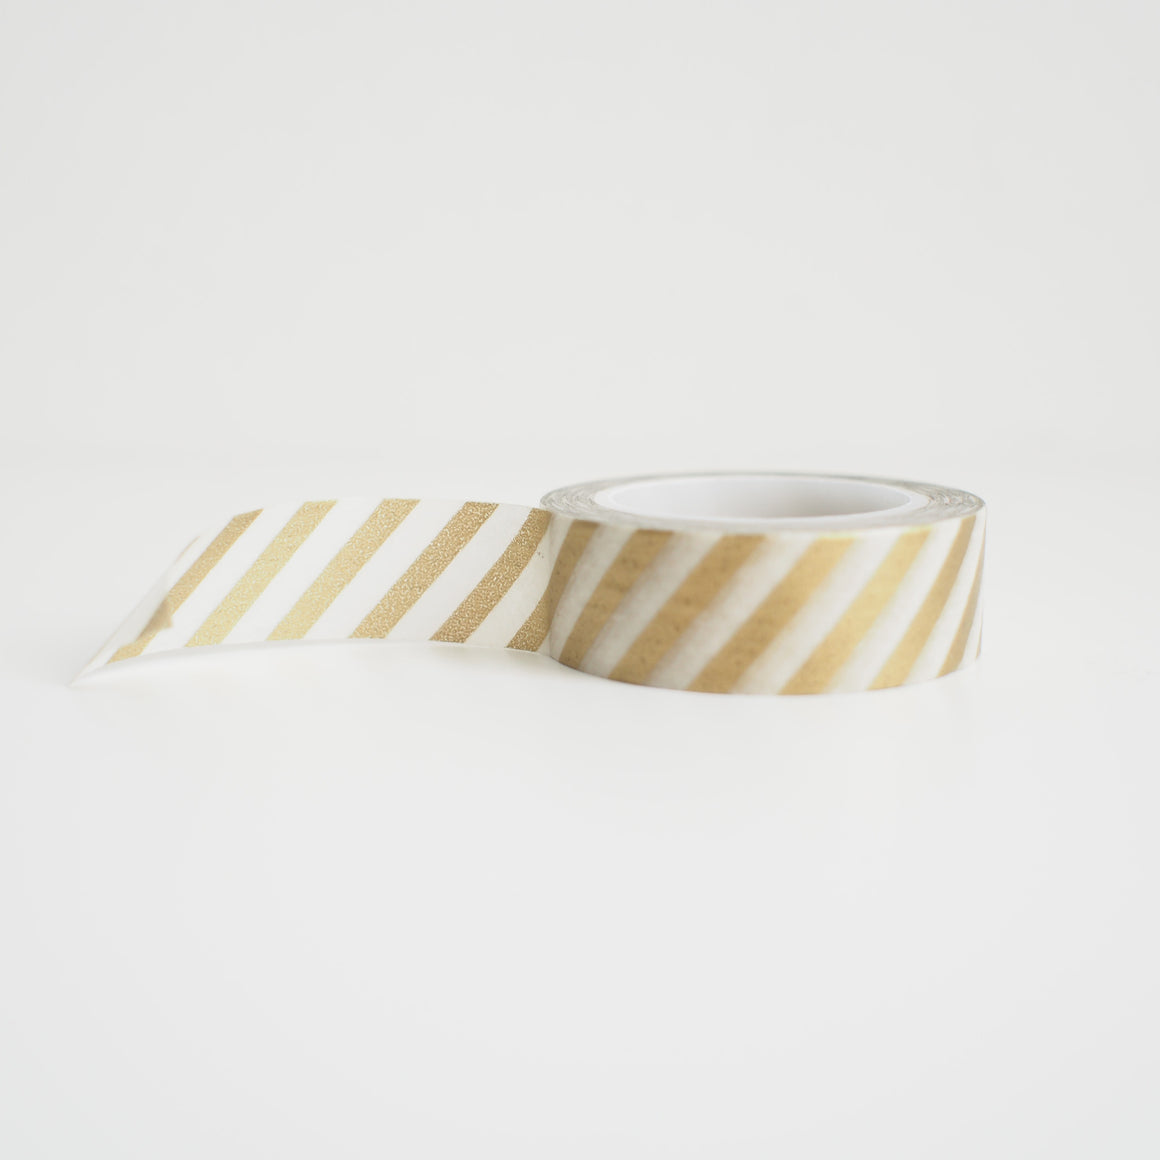 Washi Tape - Gold Diagonal Stripes